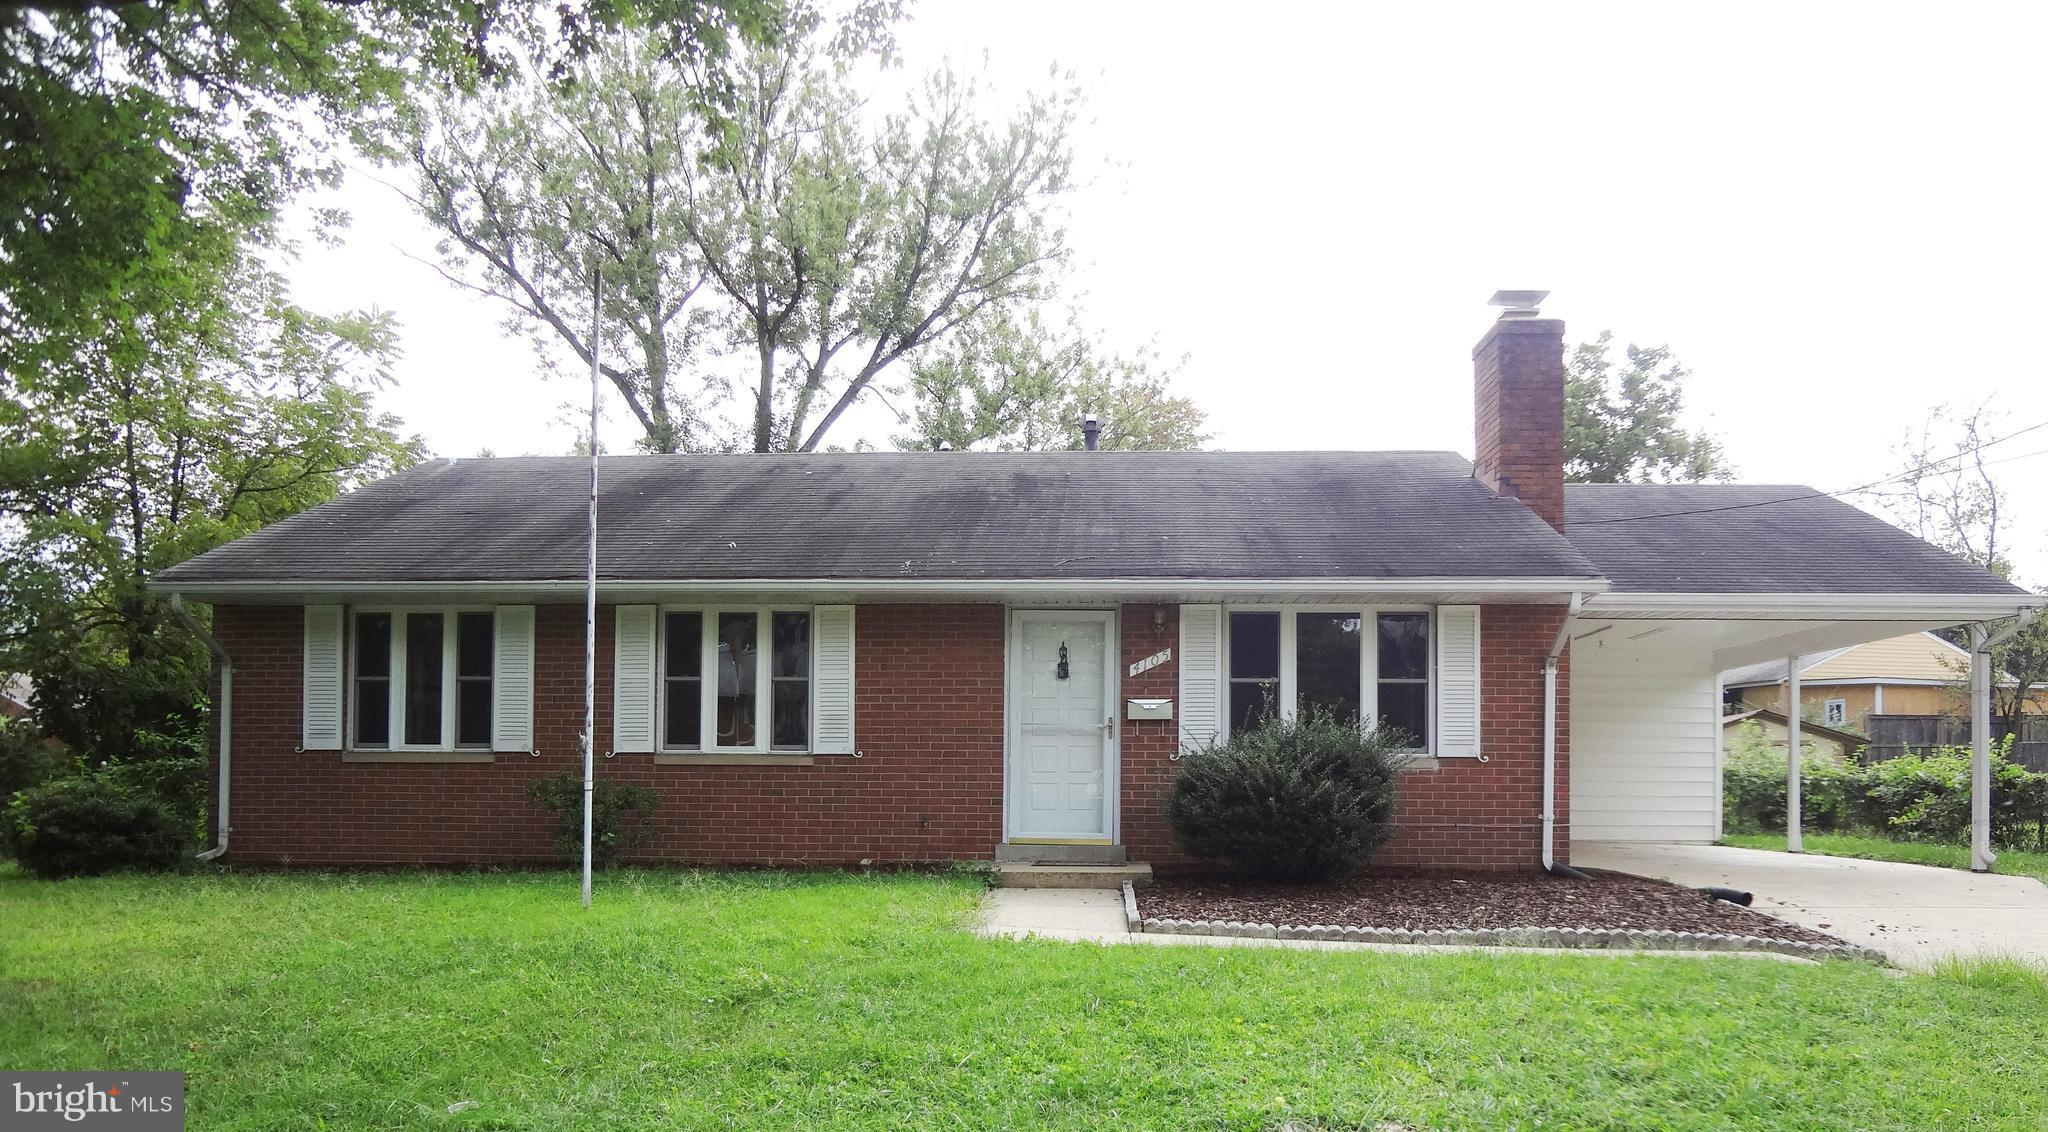 3/4 BR, 2.5 BA. Fenced, brick Extended Rambler.  All BR & BA on one level. Freshly painted, new carpet. Huge MBR (2 BR's combined).  BR#2 w/shower. Newer kit.. LR w/FPL. Huge Fam.Rm--glass door to patio. Two zone gas heat. CAC. Separate Laundry RM w/Washer & Dryer. Carport. Loads of storage. Min. to major shopping and fine restaurants.